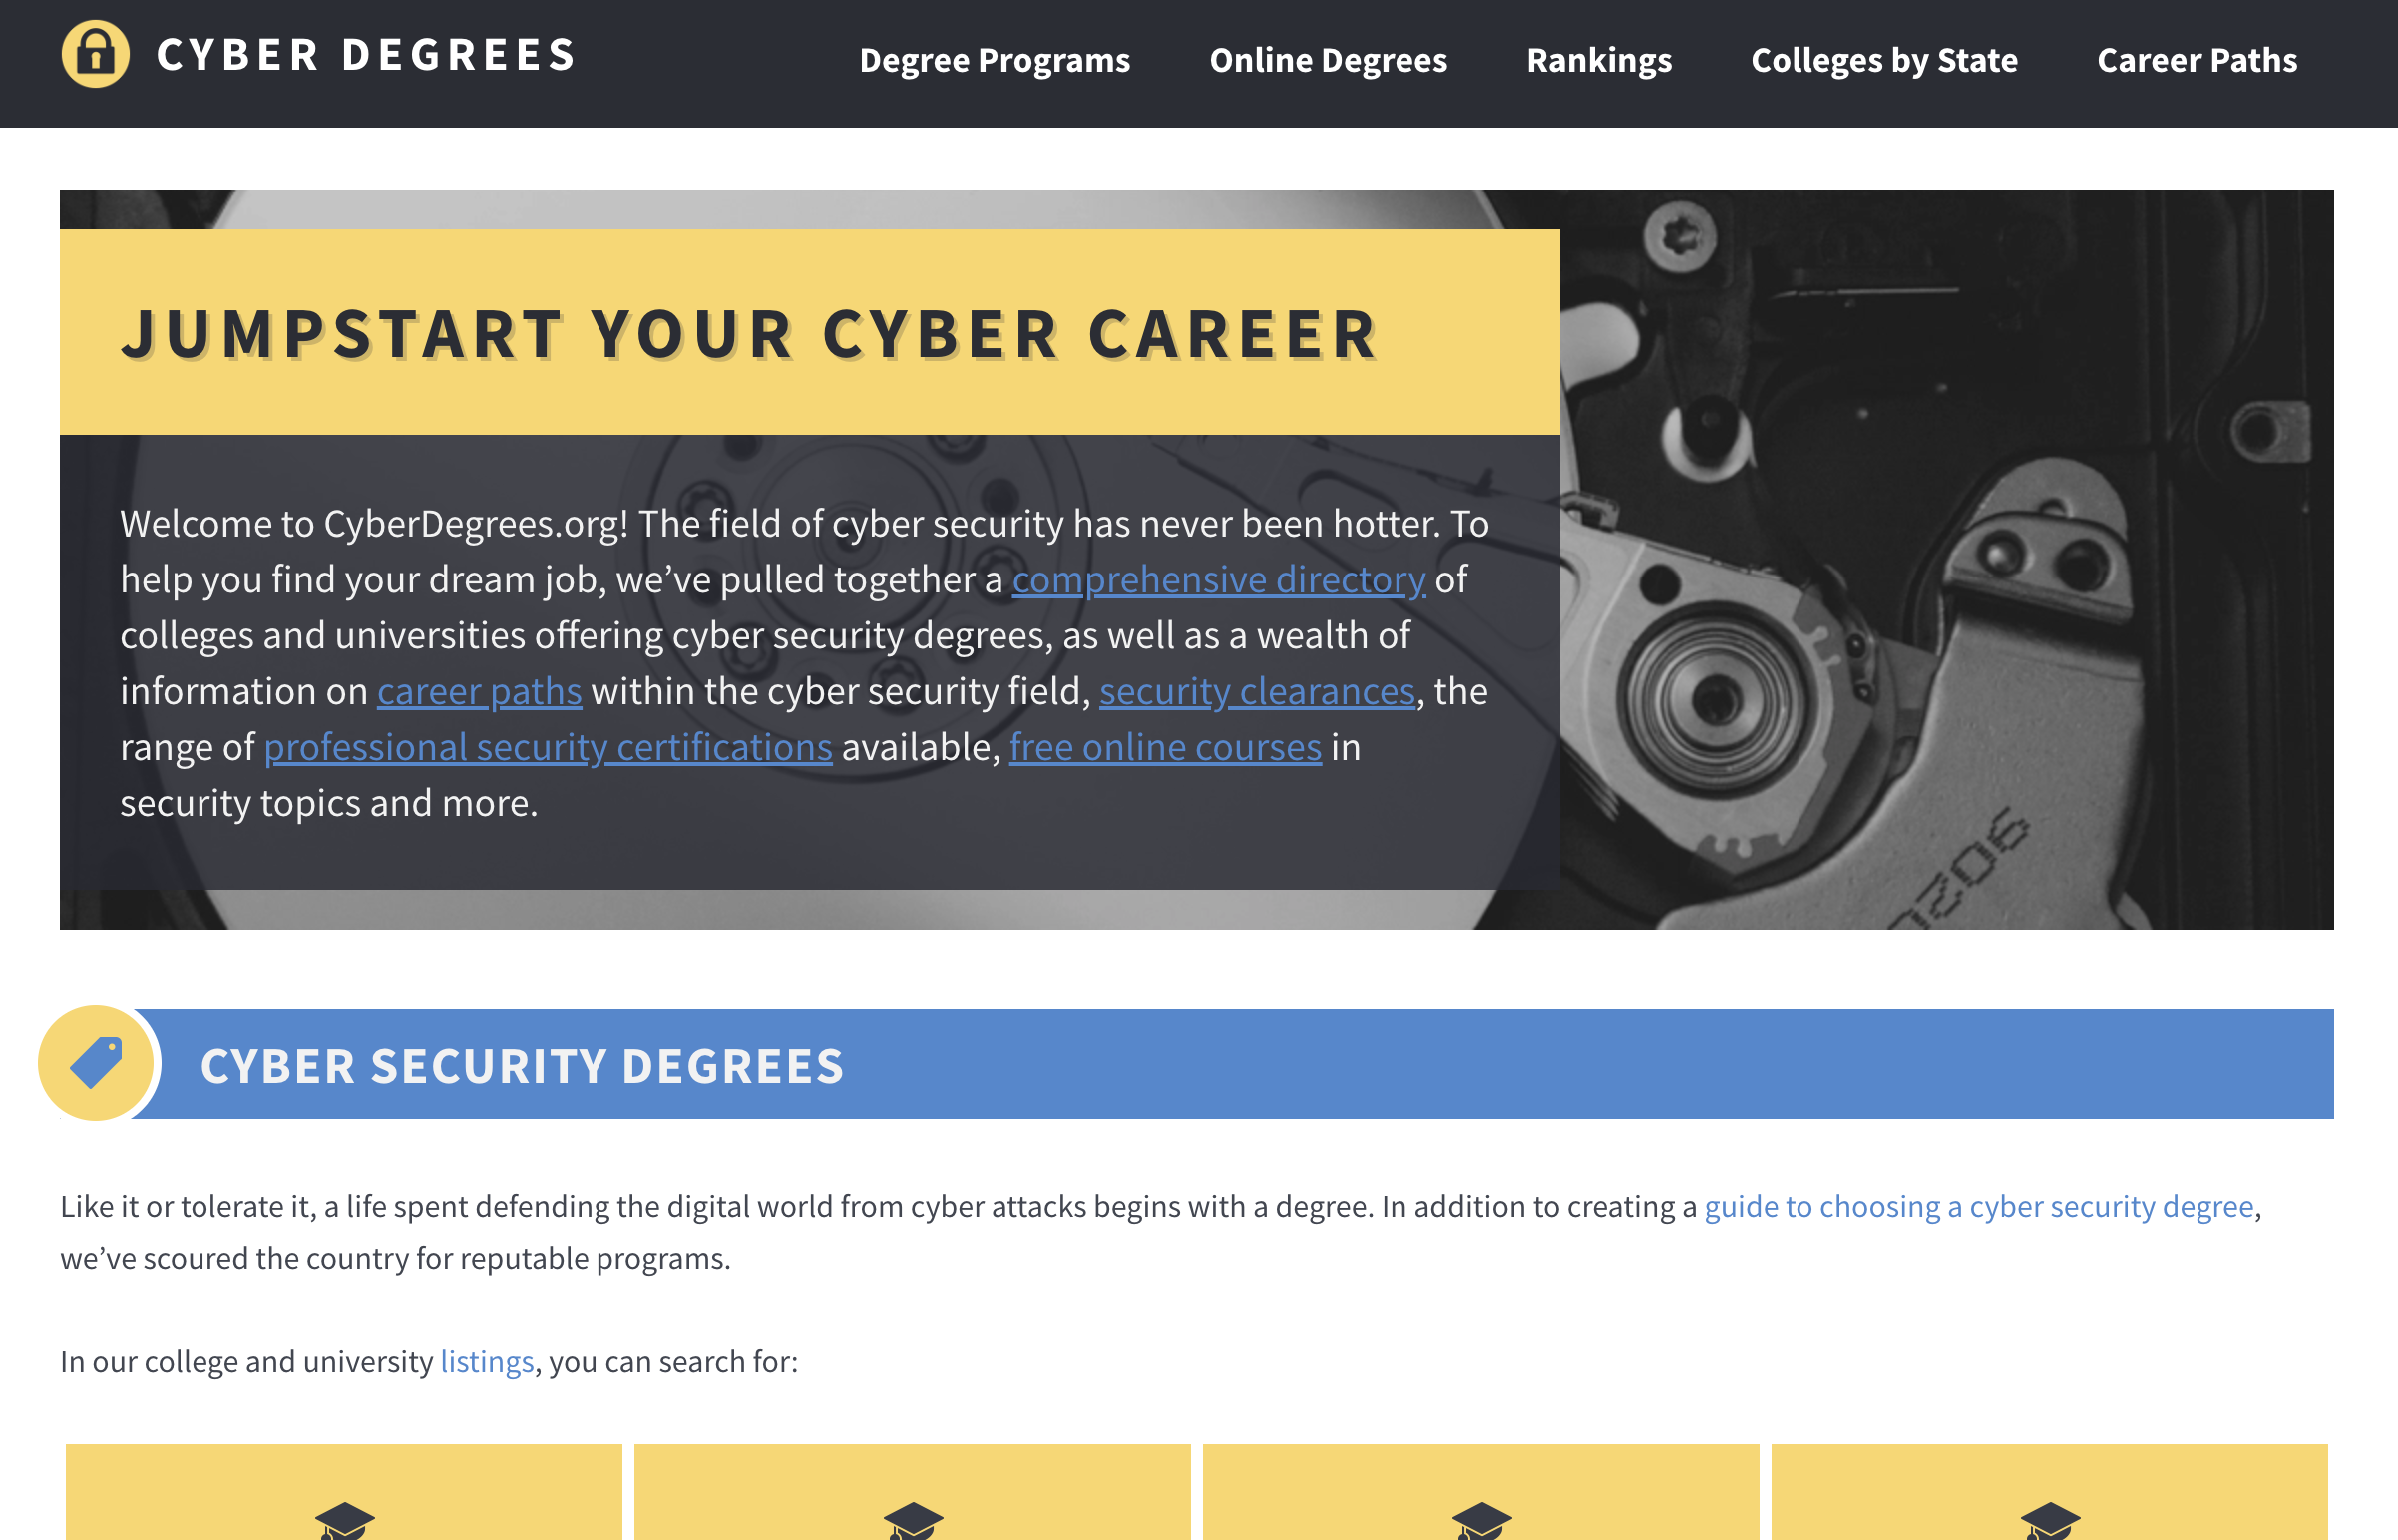 CyberDegrees.org